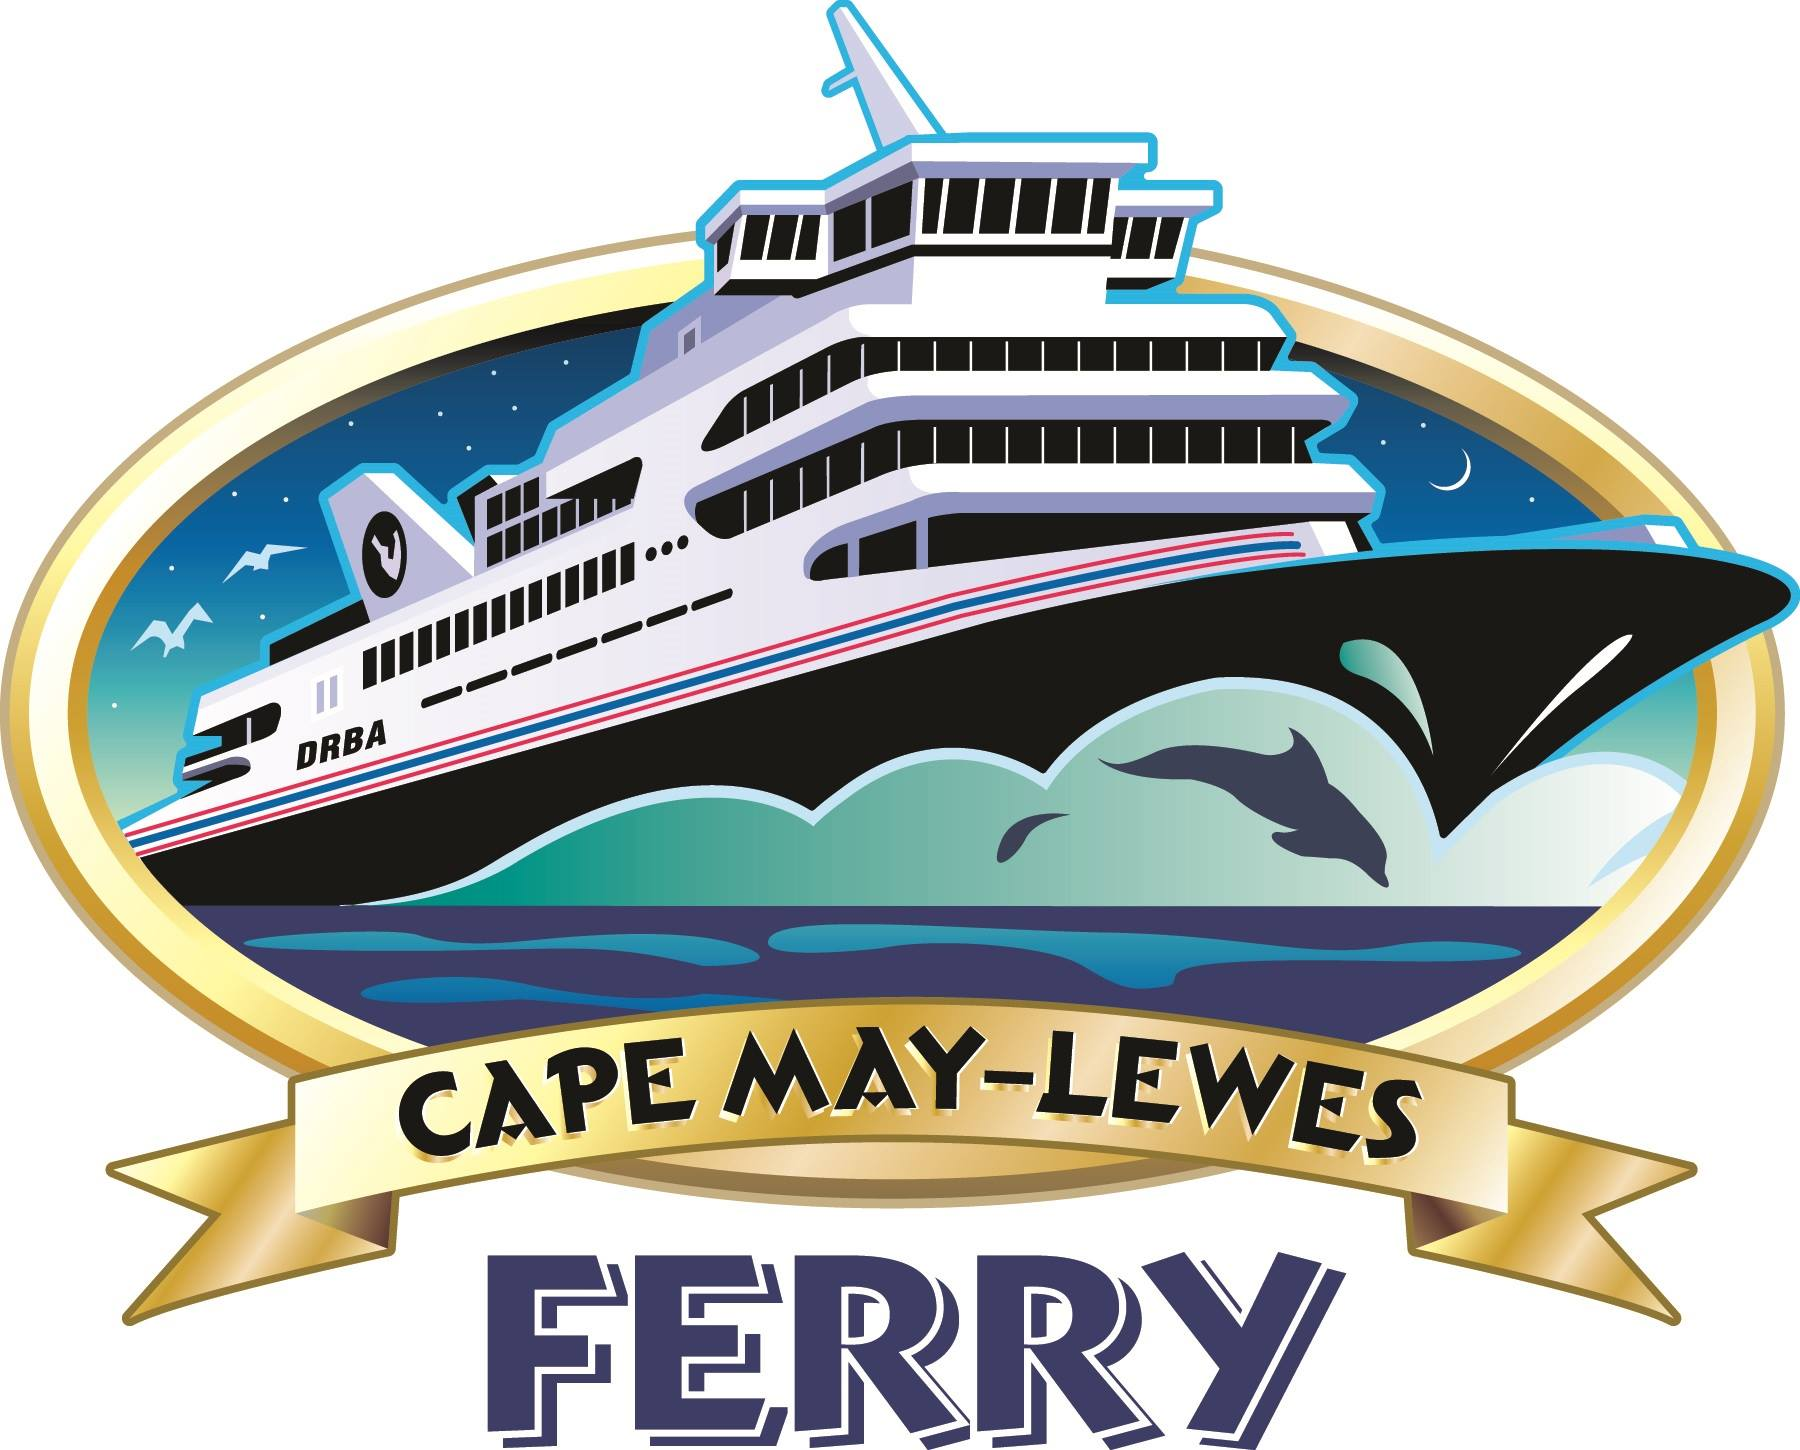 Cape May-Lewes Ferry